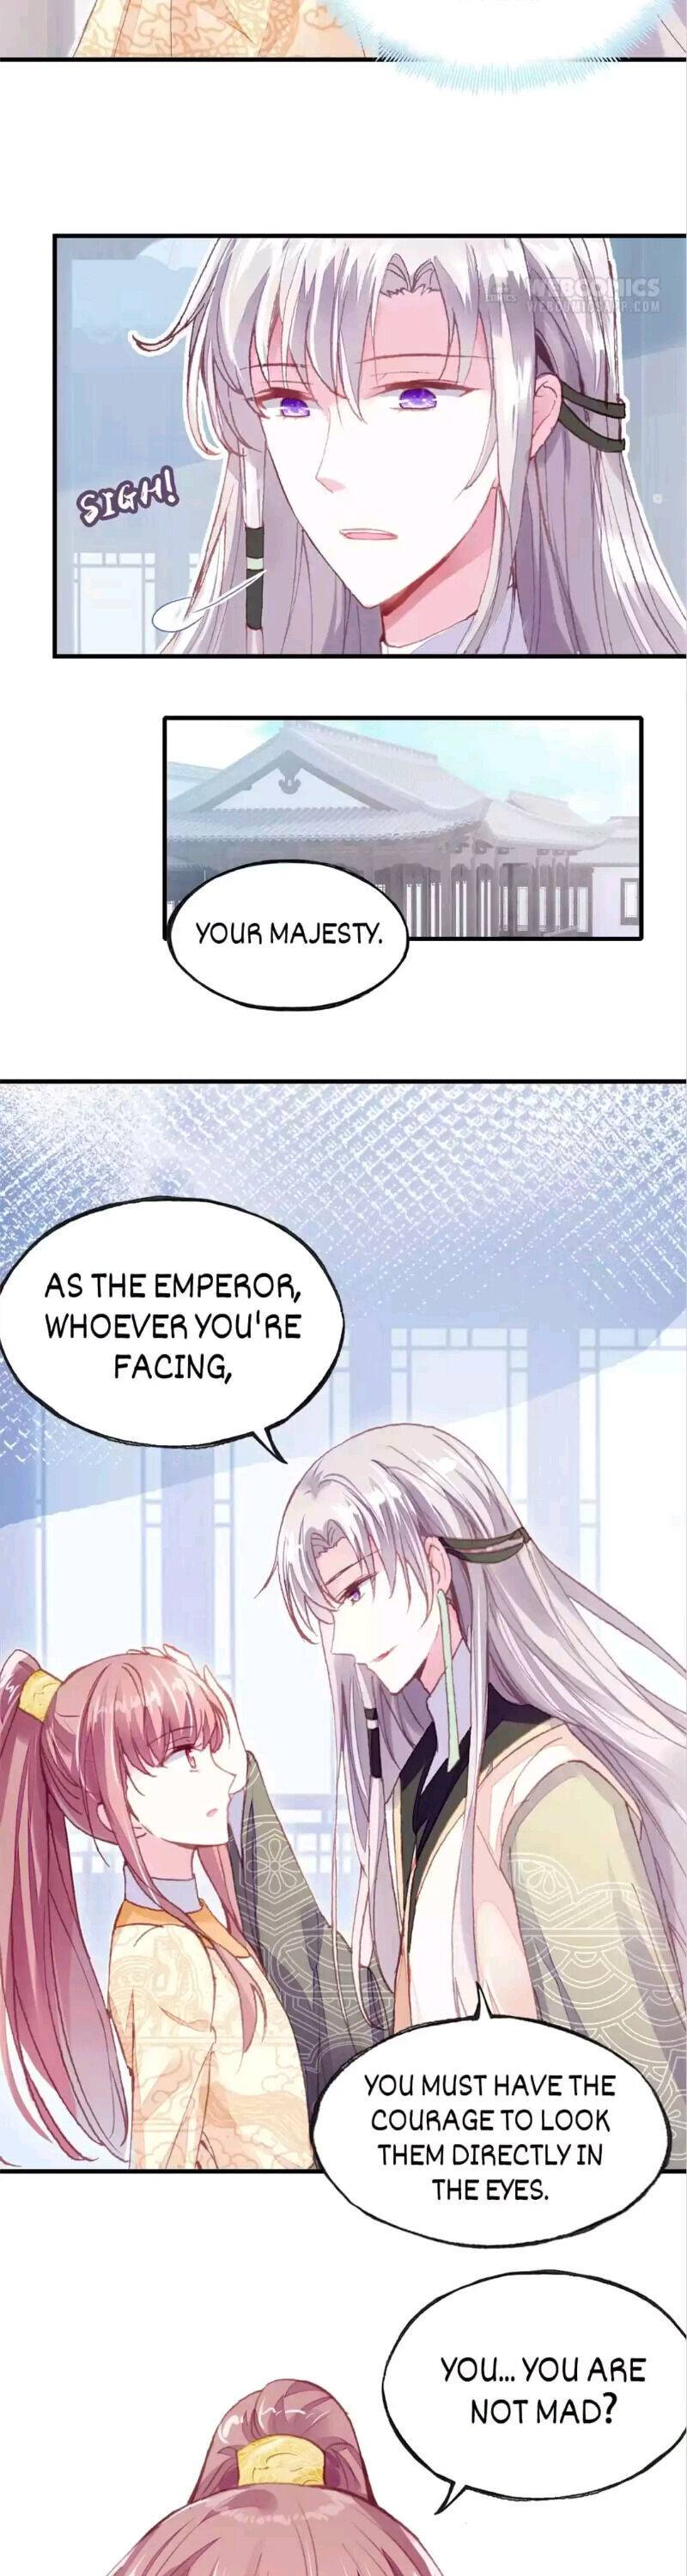 His Majesty Doesn't Want To Be Too Bossy - chapter 20 - #3